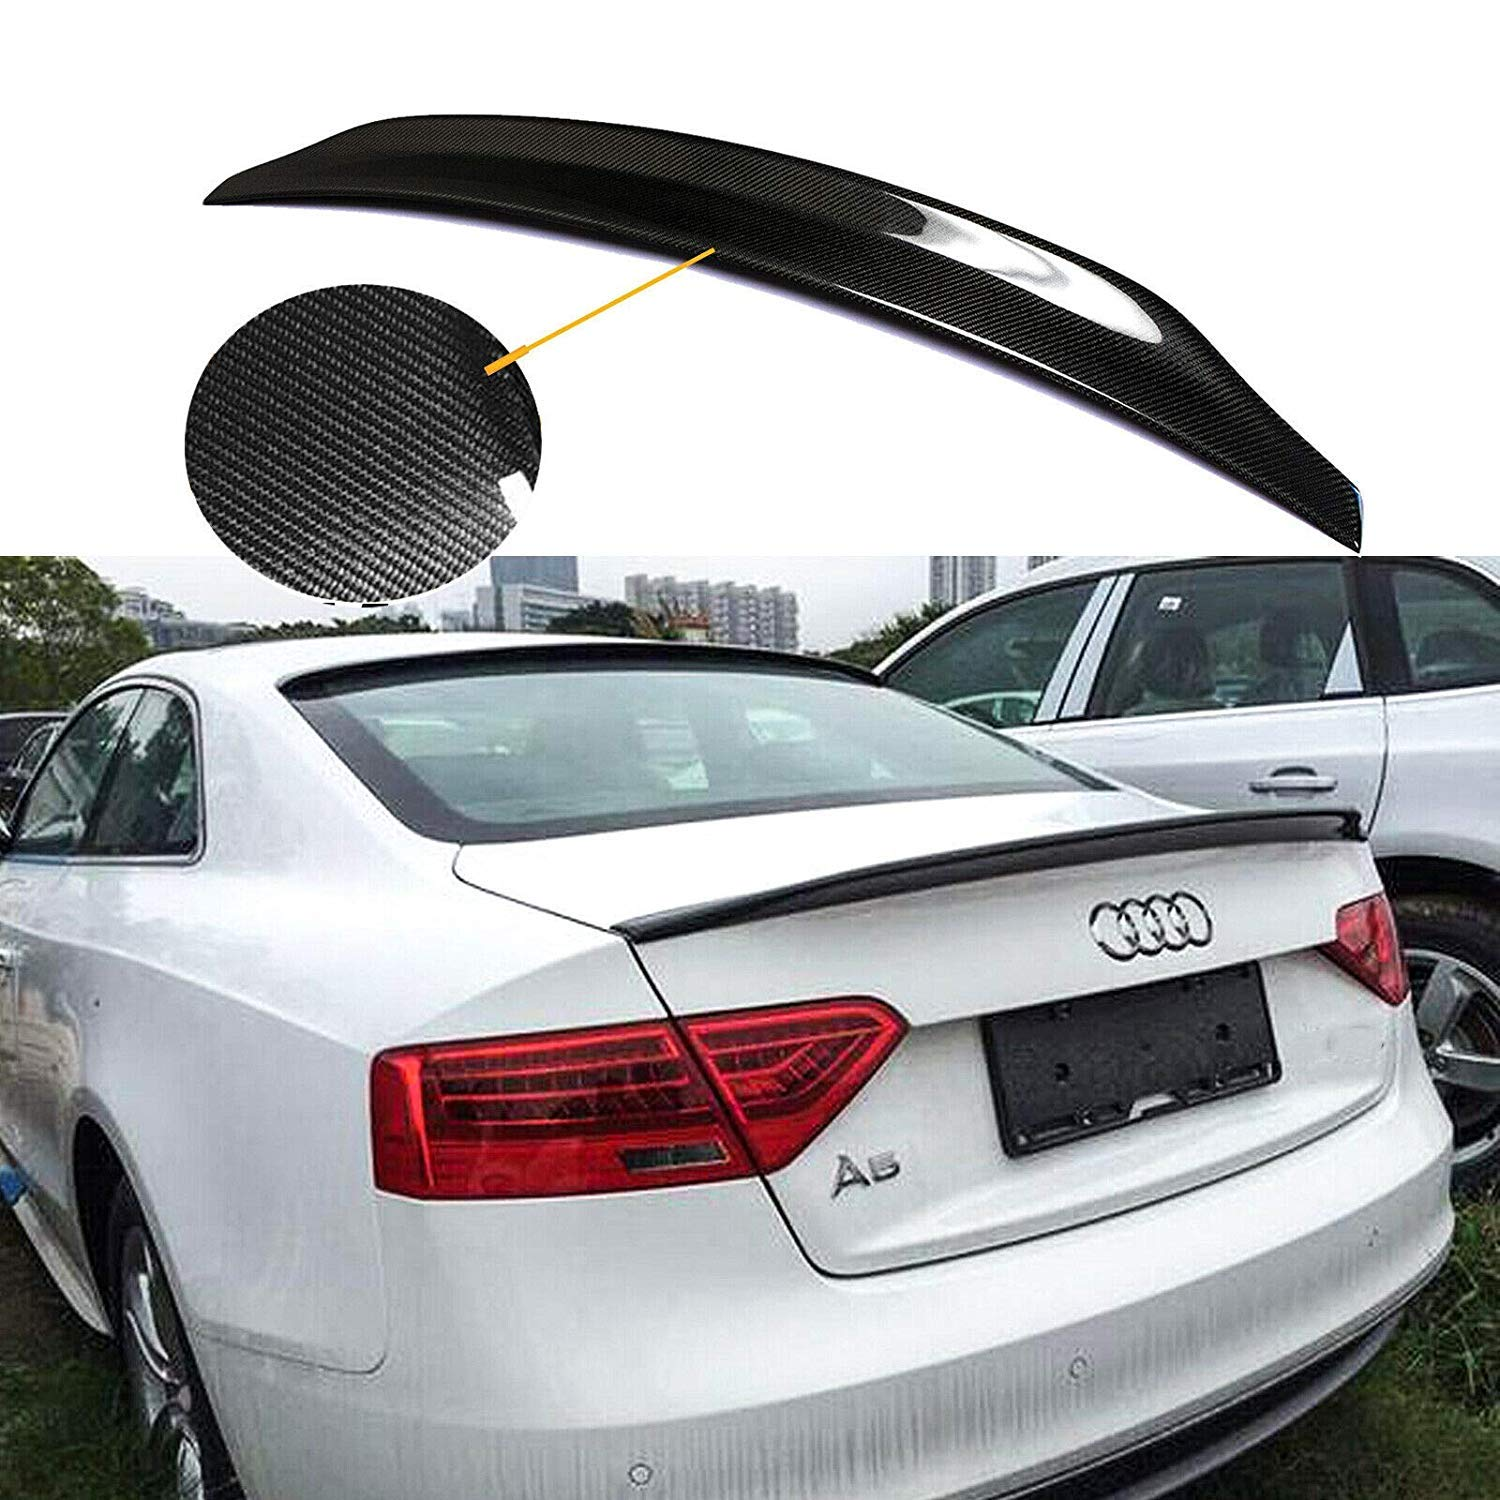 Xotic Tech Carbon Fiber Rear Trunk Lid Duckbill Cat Style Tail Spoiler Wing for Audi A5 B8 2008-2016